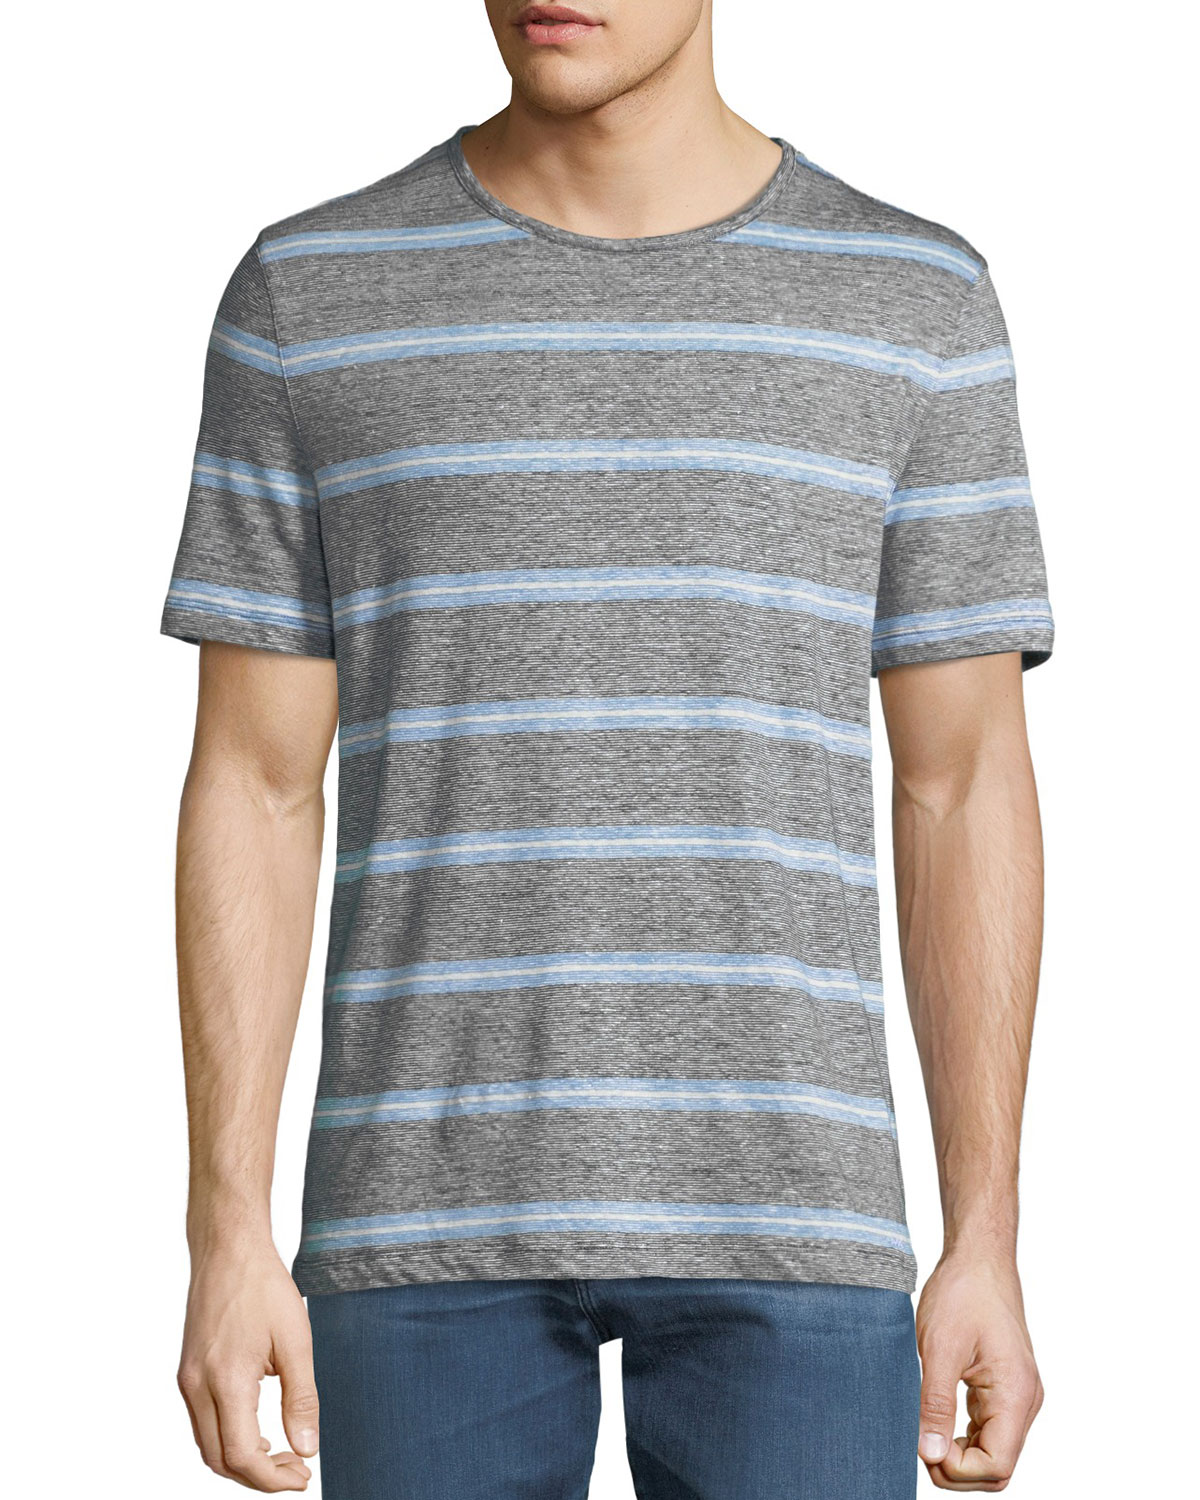 Men's Striped Linen-Blend T-Shirt